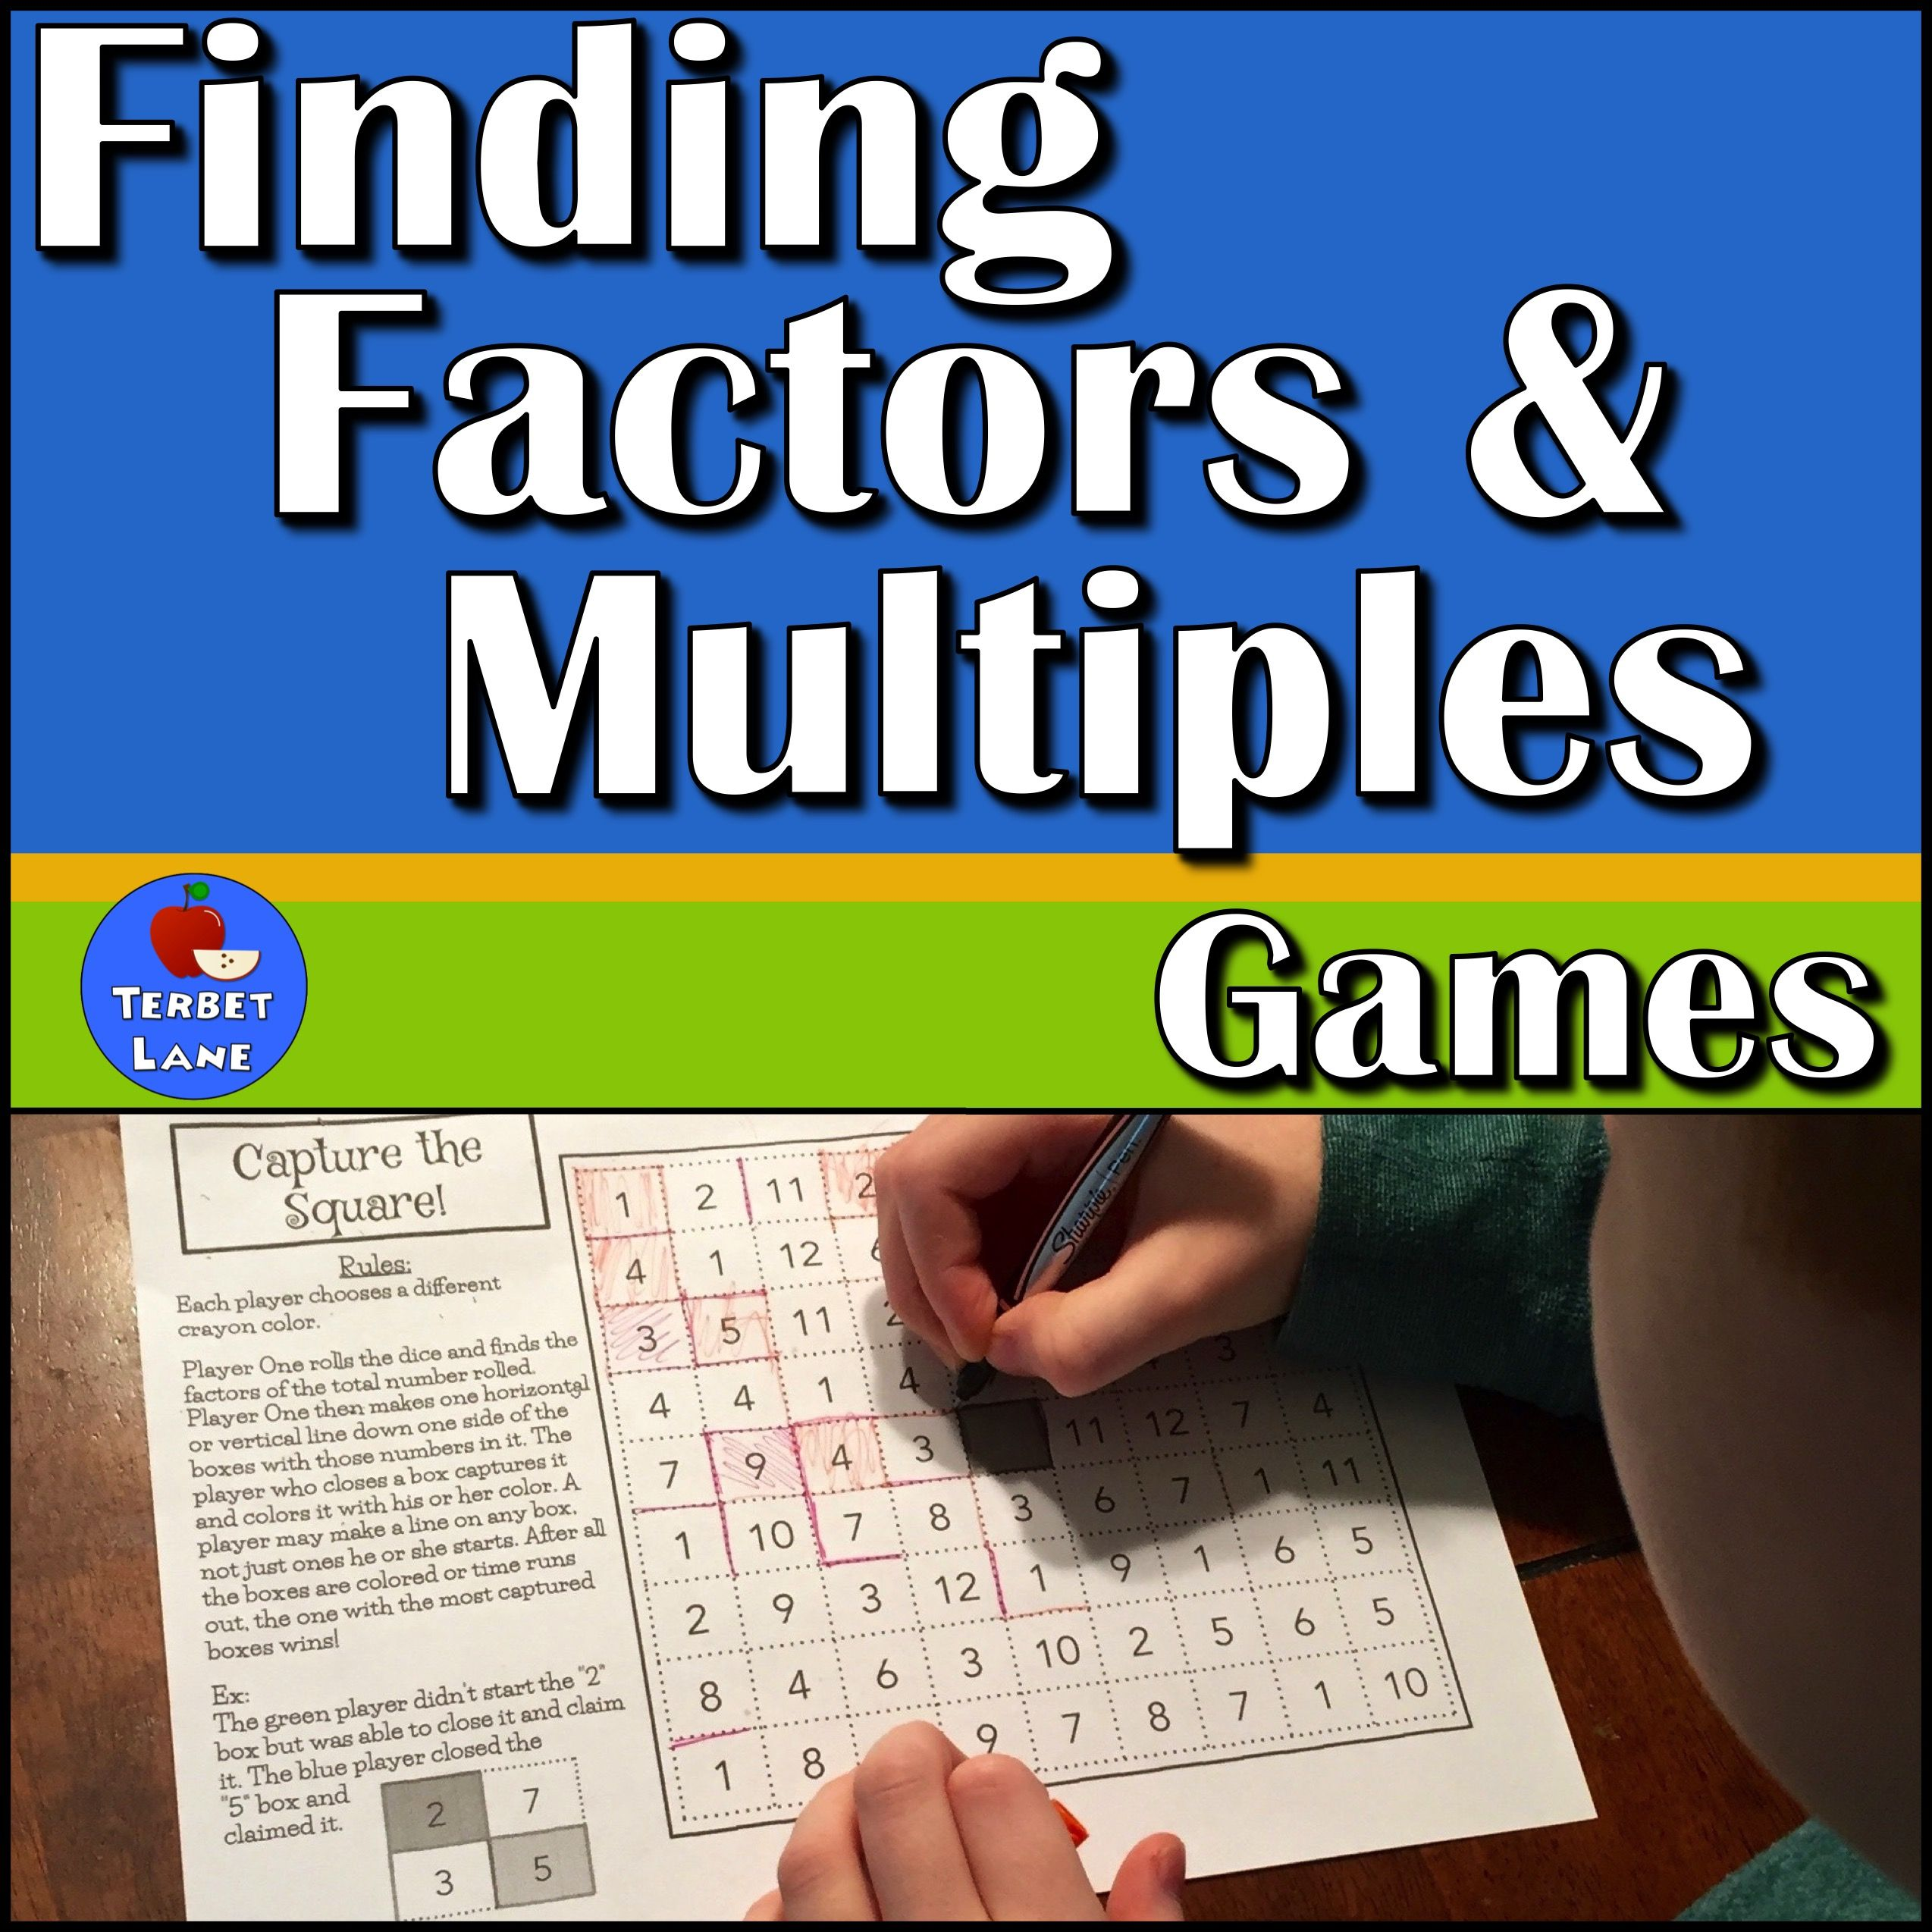 Finding Factors And Multiples Math Games From Terbet Lane